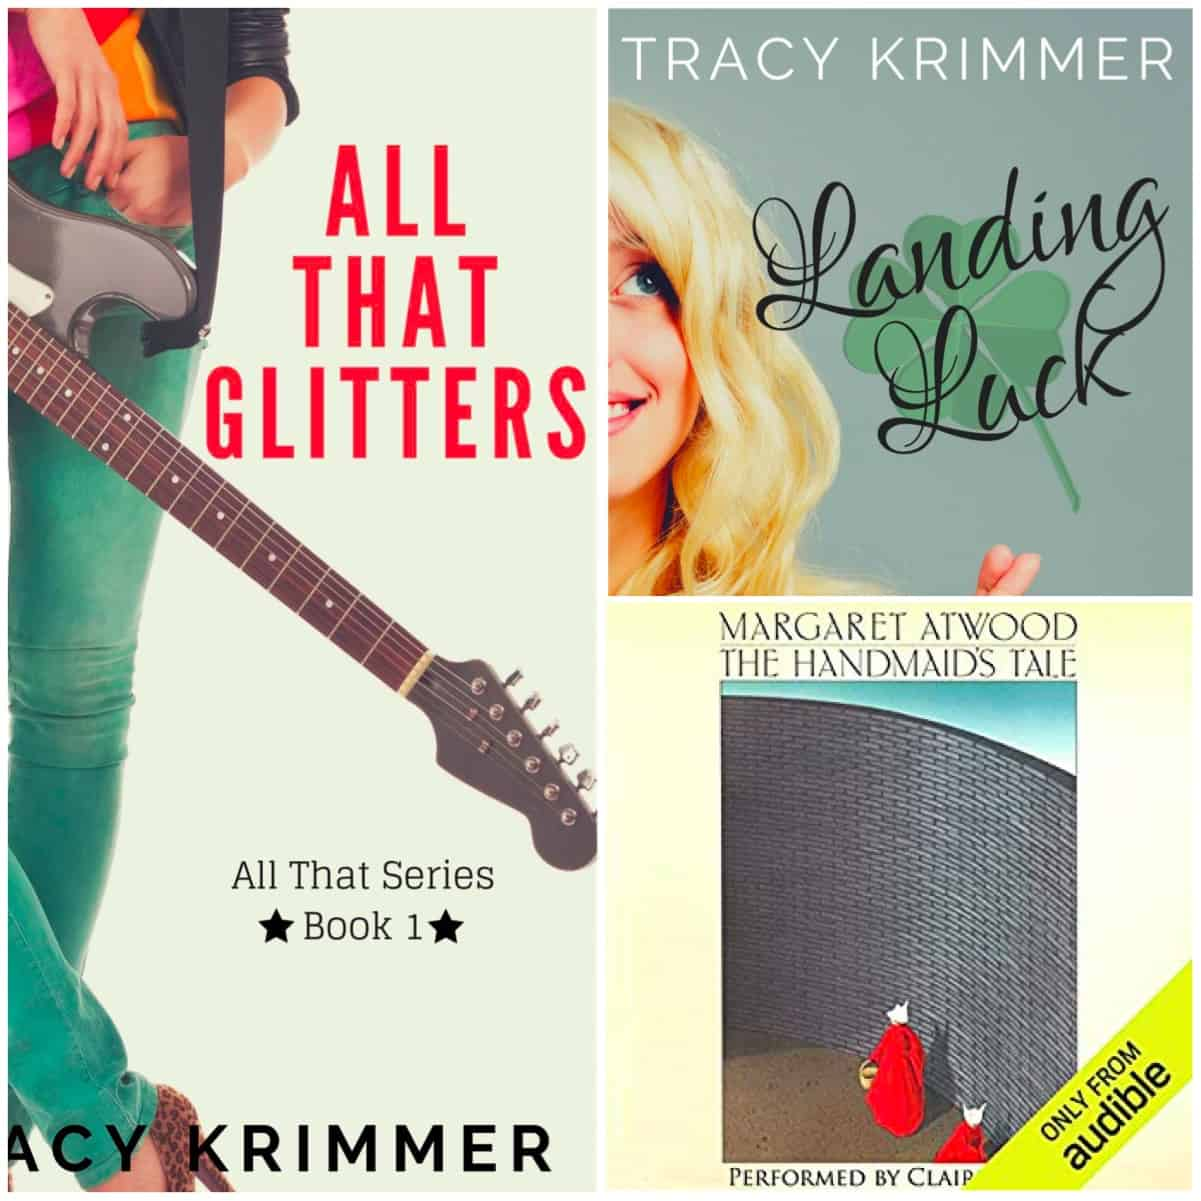 This month we have books by Tracy Krimmer and Margaret Atwood.